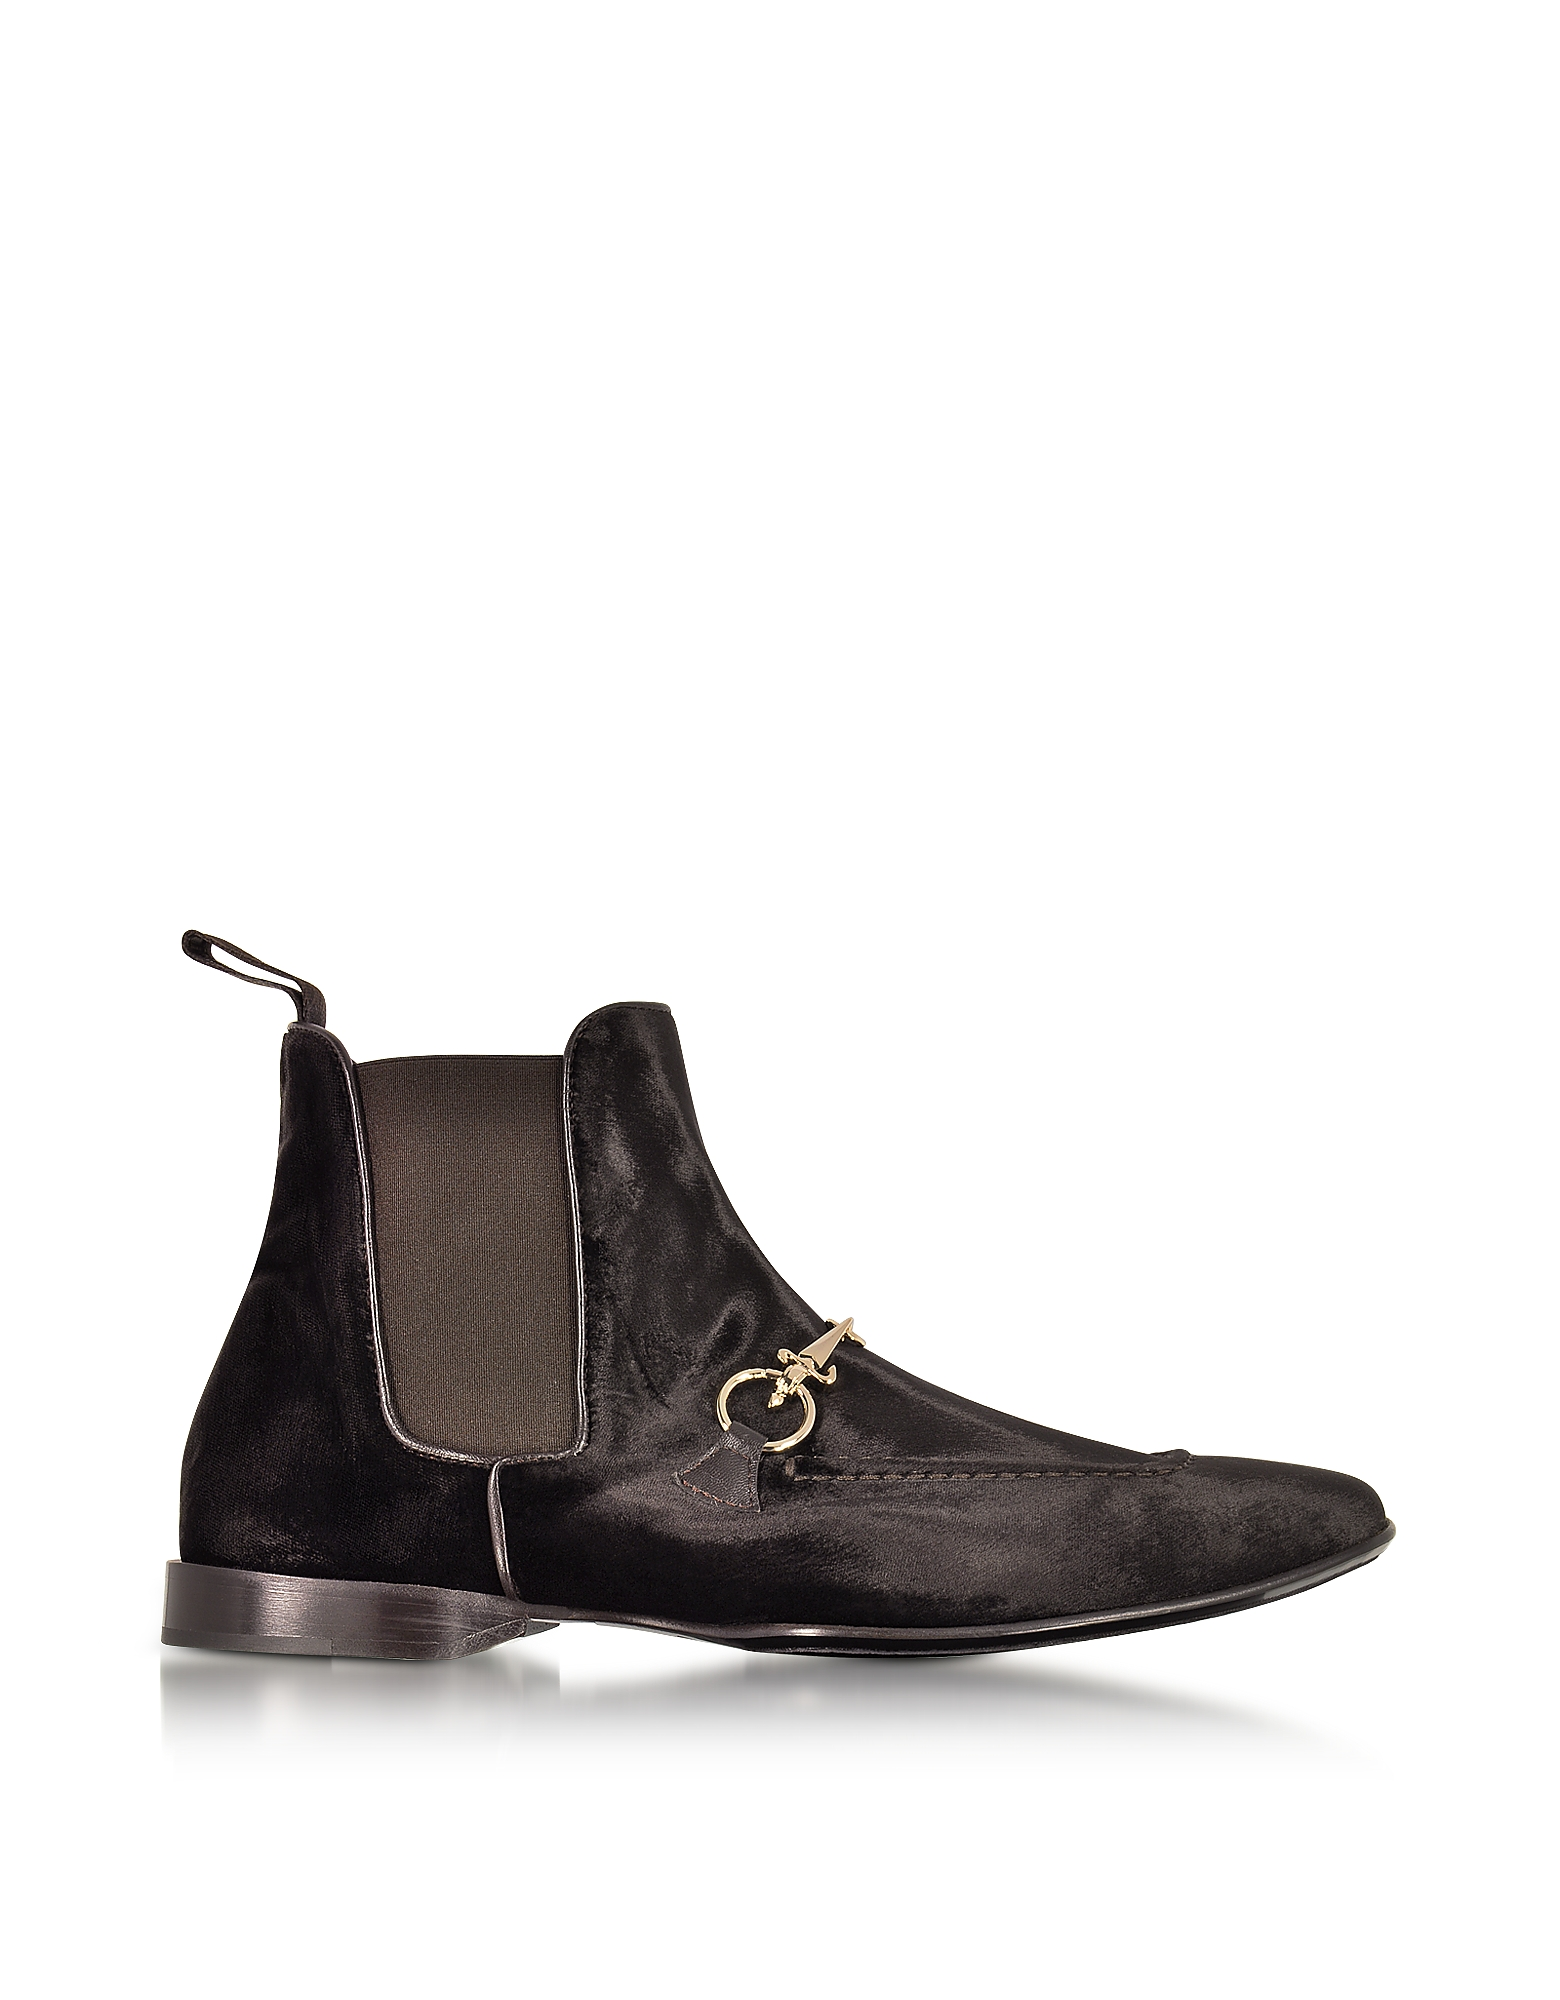 Cesare Paciotti Shoes, Dark Brown Velvet Boots